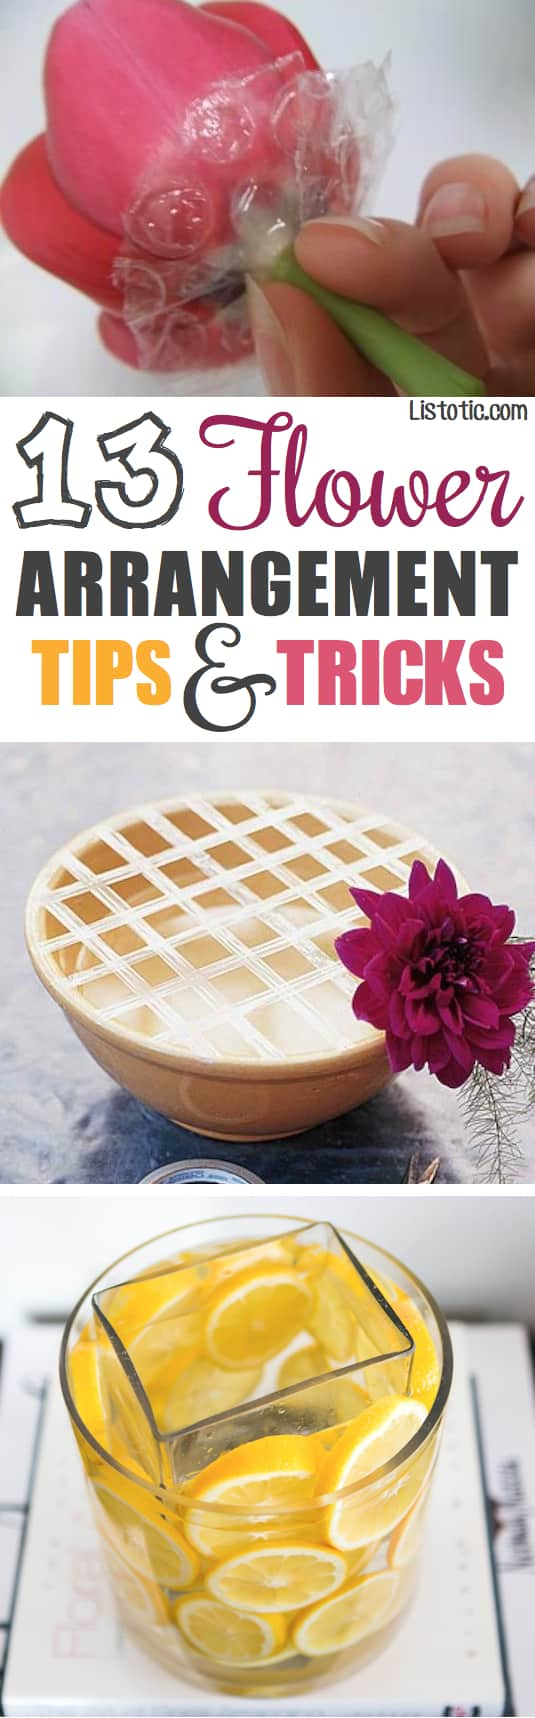 13 Tips On How To Arrange Flowers Like A Pro -- OMG!! Made my grocery store flowers look stunning! | Listotic